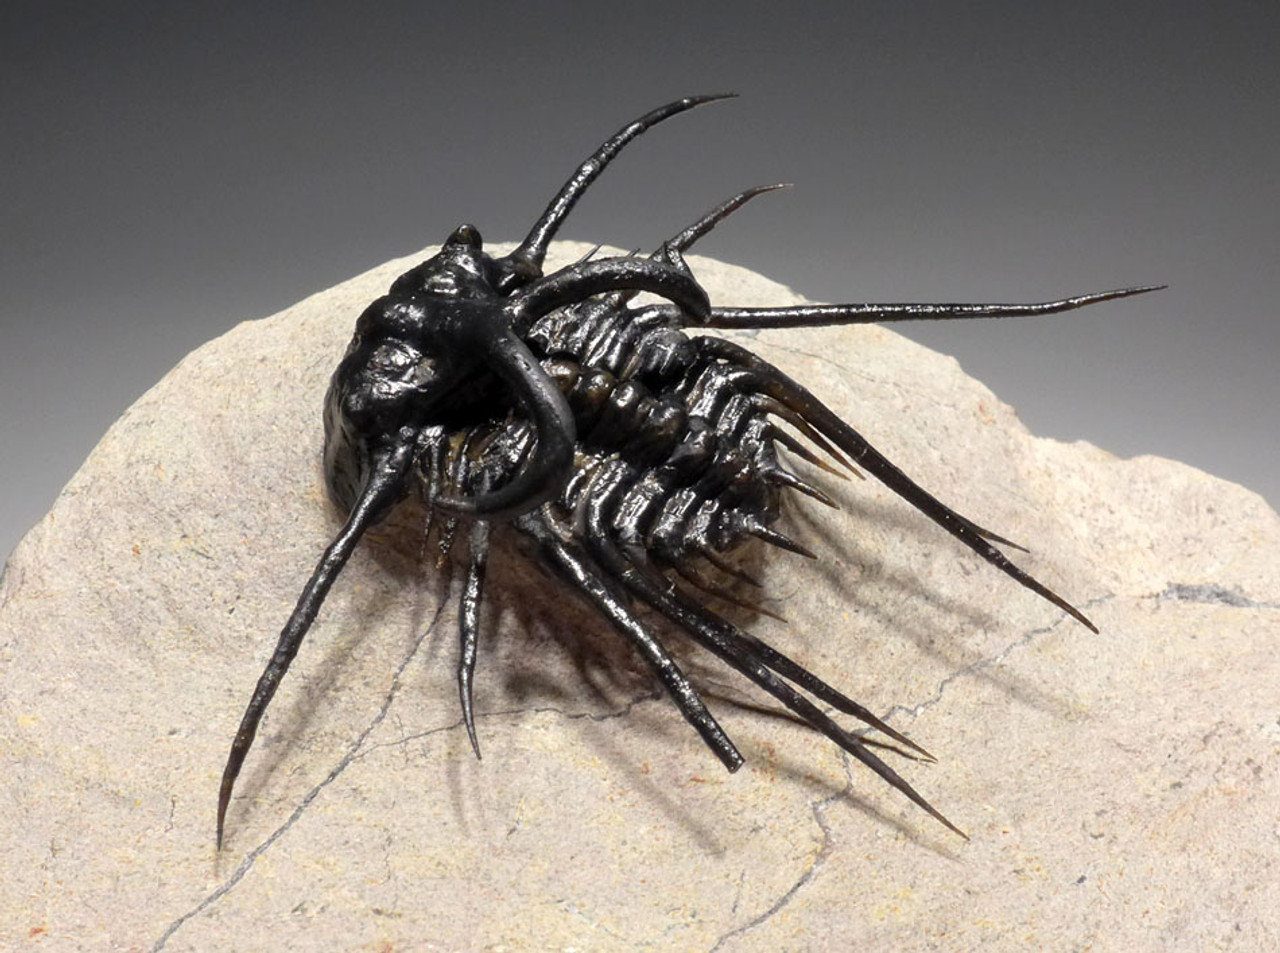 TOP QUALITY SPINY DICRANURUS TRILOBITE WITH FULLY EXPOSED SPINES *TRX322